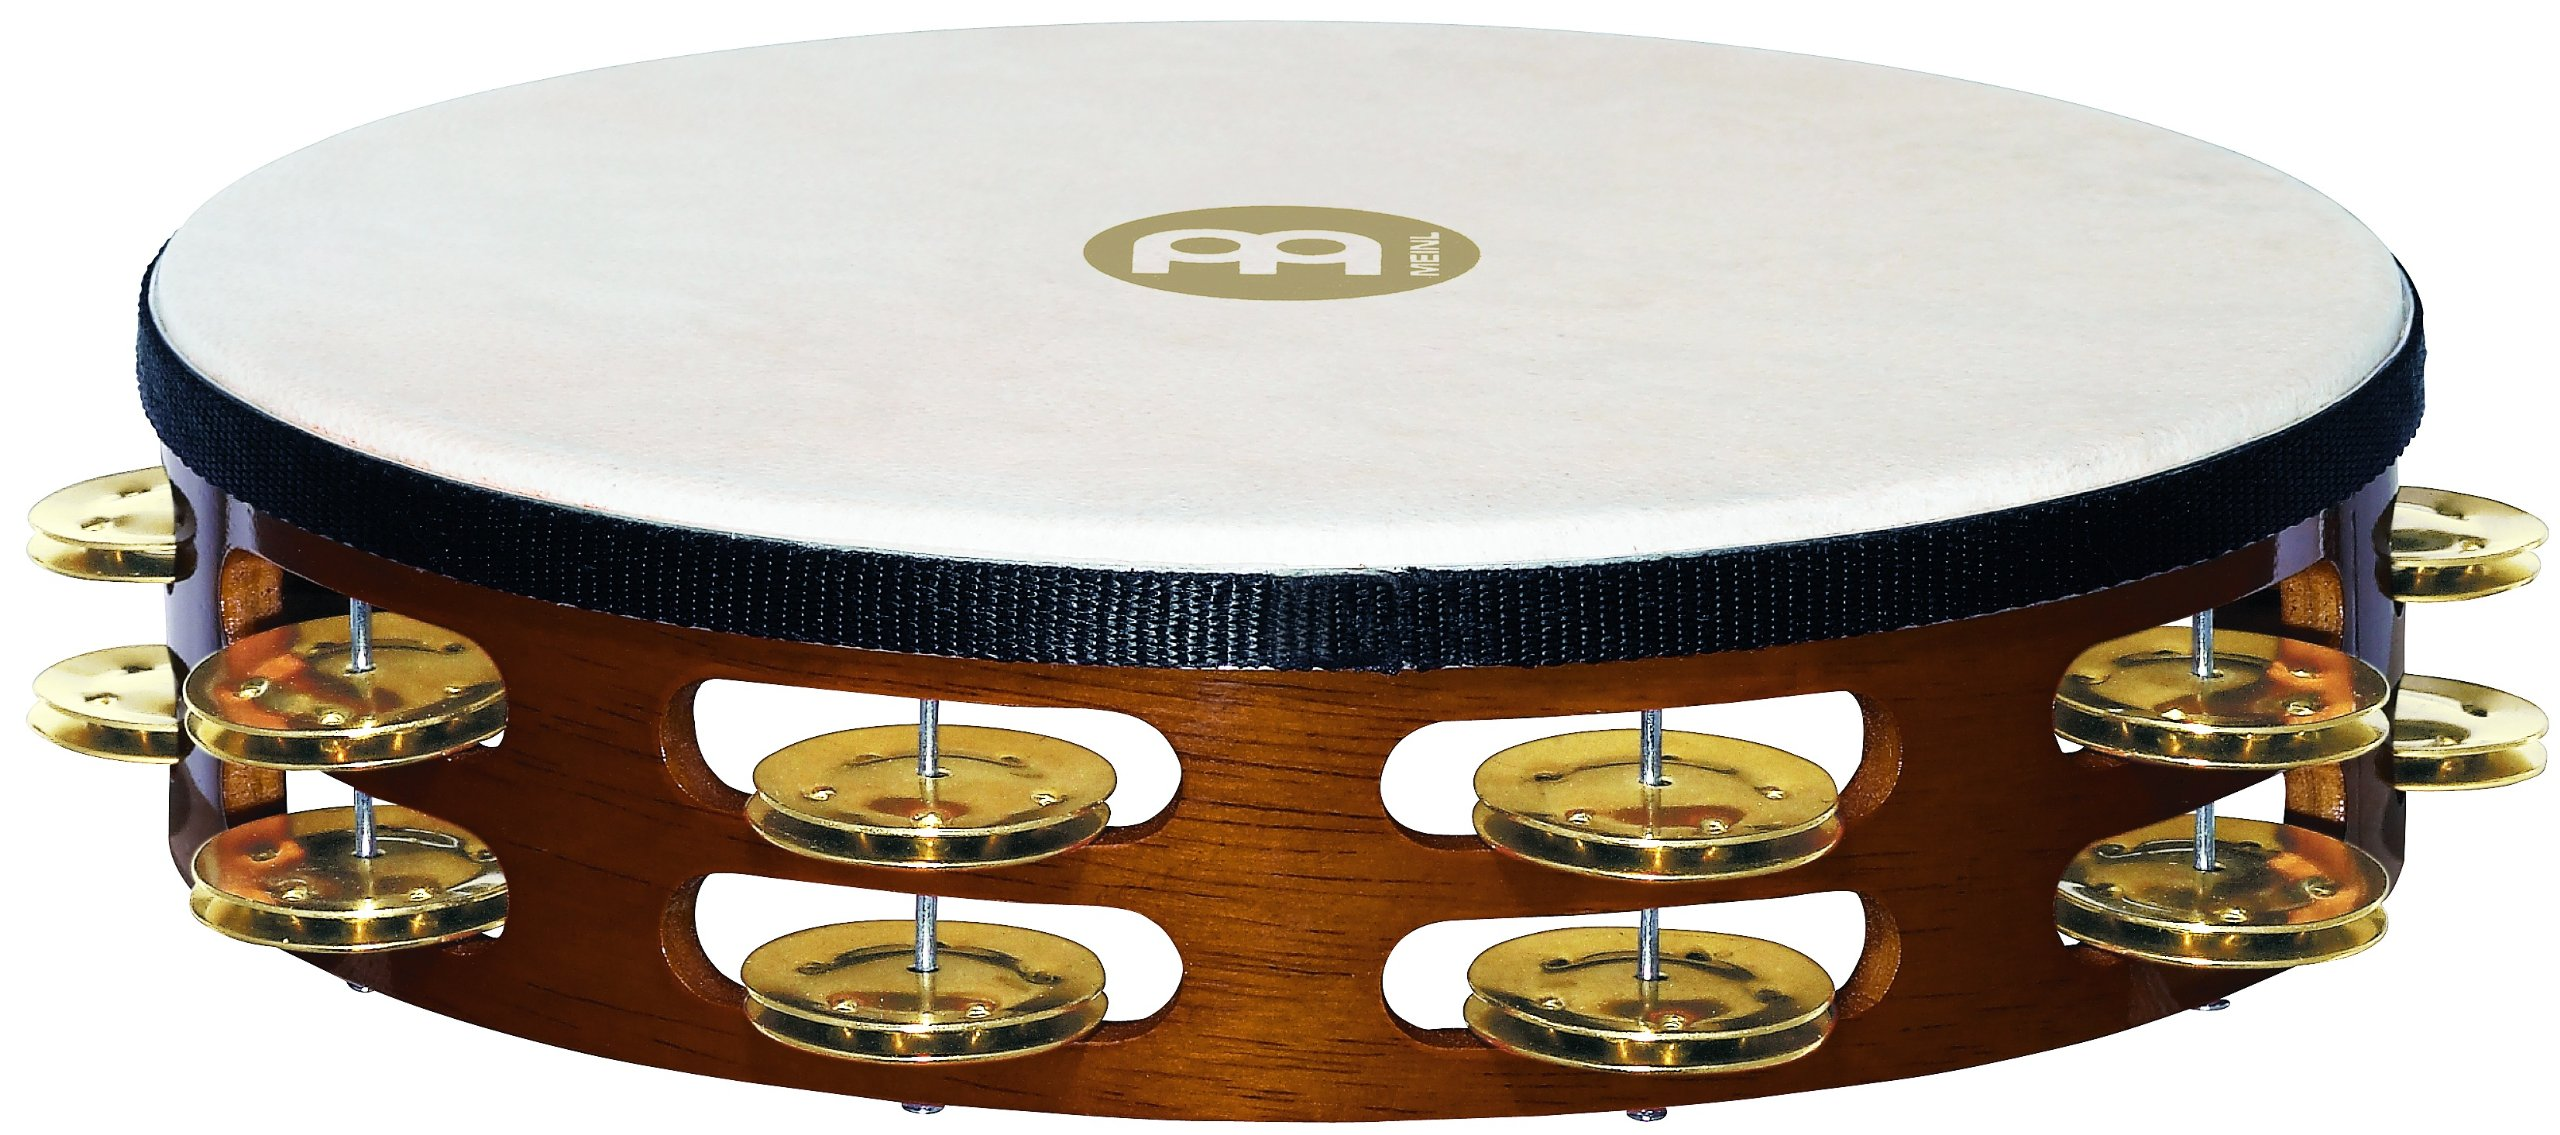 Meinl Percussion TAH2B-AB Traditional 10-Inch Wood Tambourine with Goat Skin Head and Brass Jingles, 2 Row